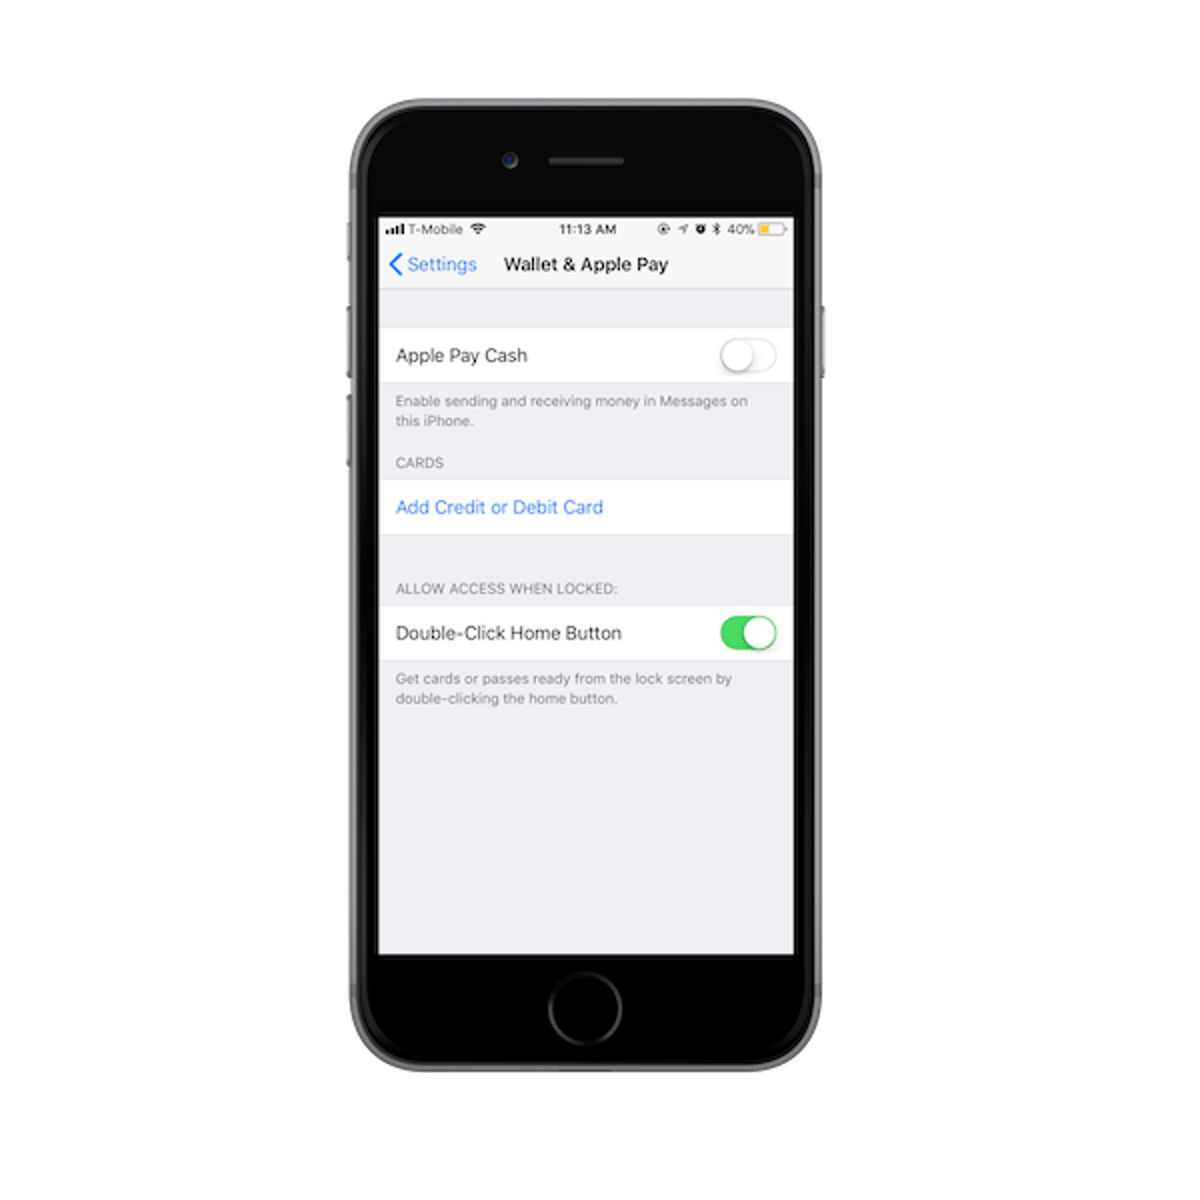 Apple Pay Cash: How to Set Up iPhone's New Personal Payments Feature